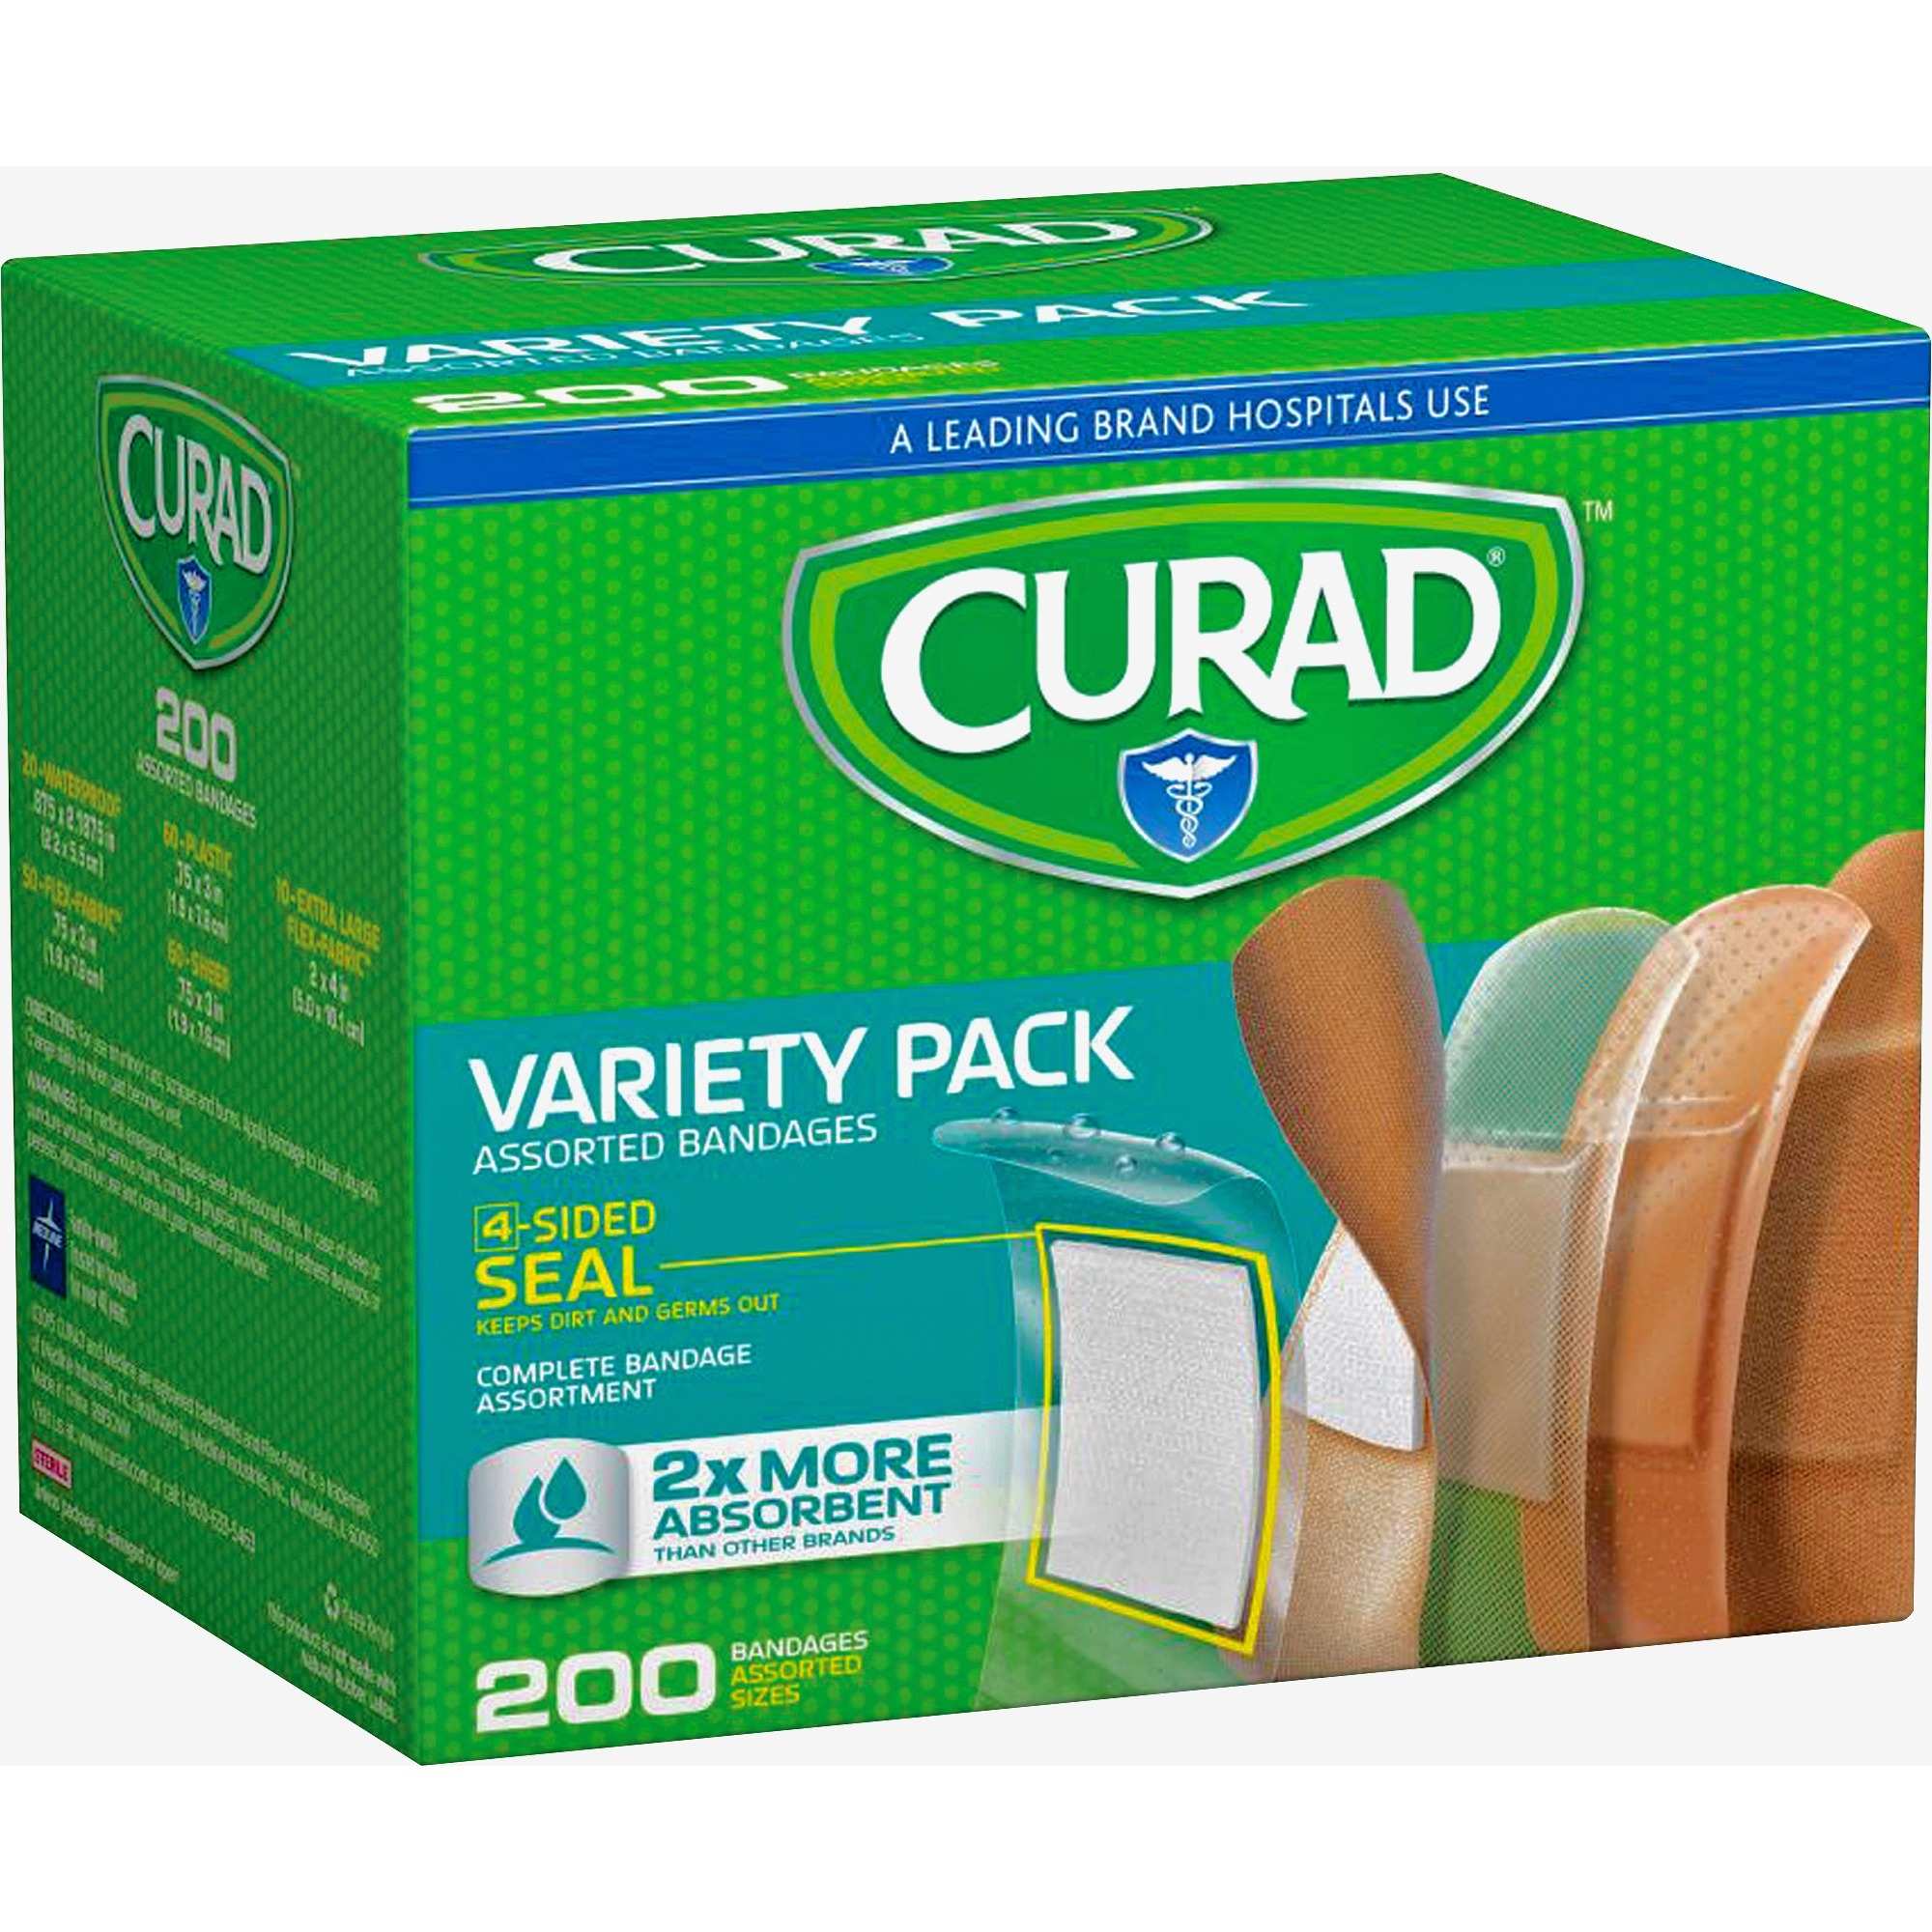 Curad, MIICUR0800RB, Variety Pack 4-sided Seal Bandages, 200 / Box, Assorted